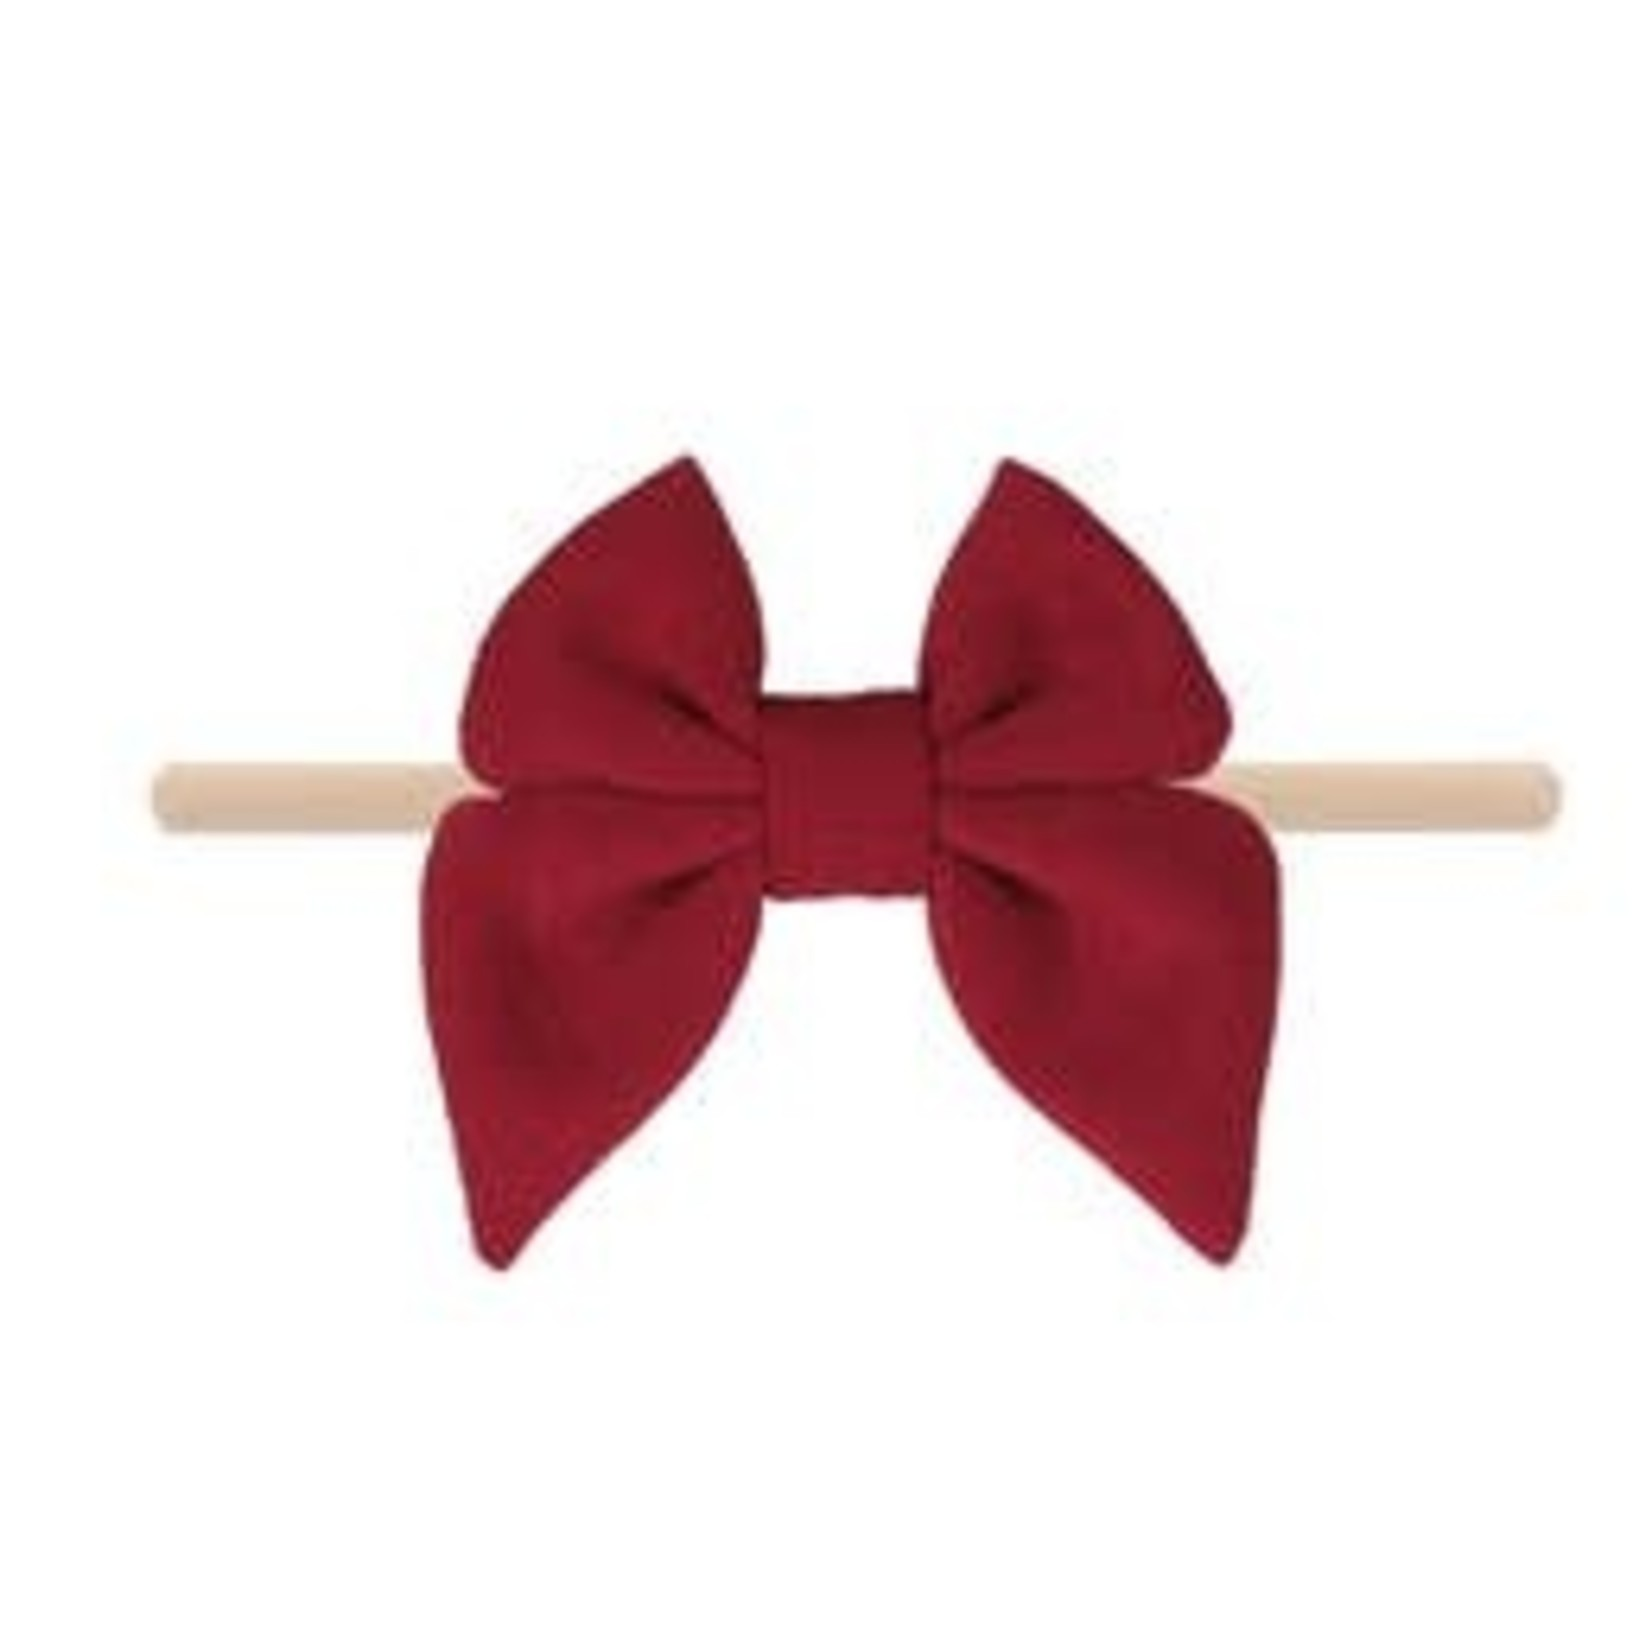 Emerson and Friends Merlot Cotton Bow Baby Headband